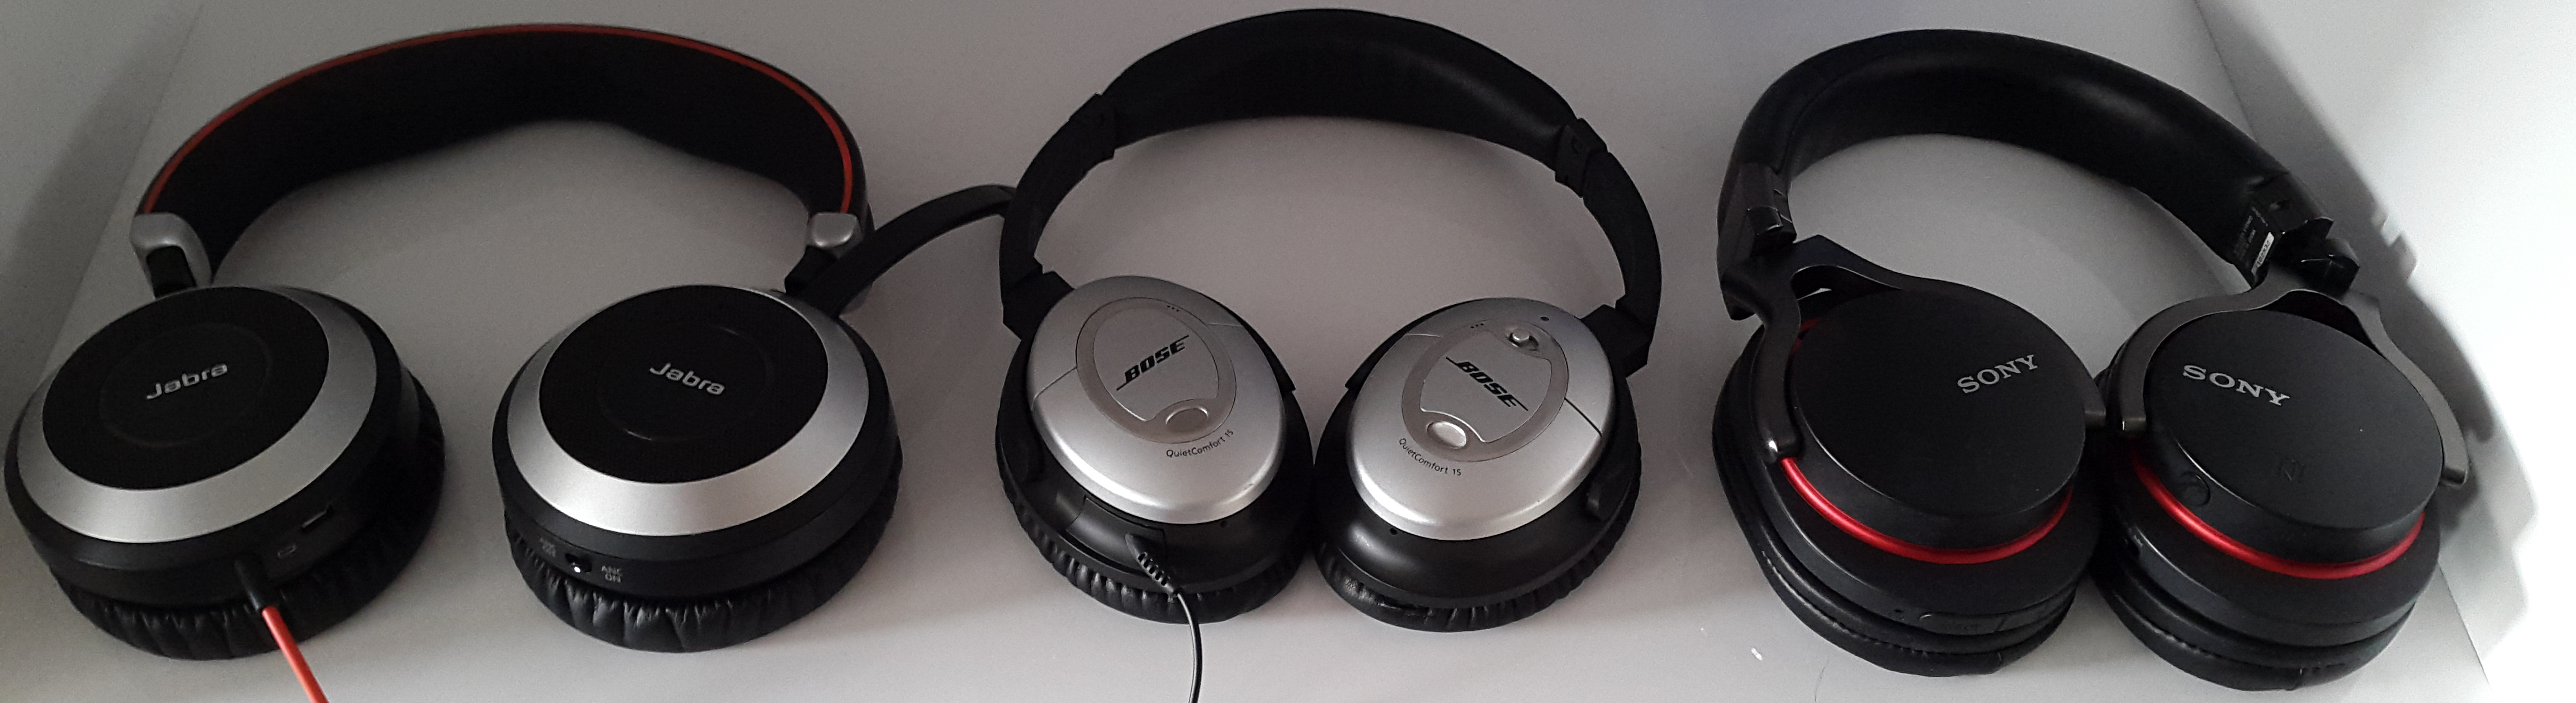 Using Lync Like A Lyncpro Is Jabra Evolve 80 The Must Have Headset For All Lyncpro S Msunified Net